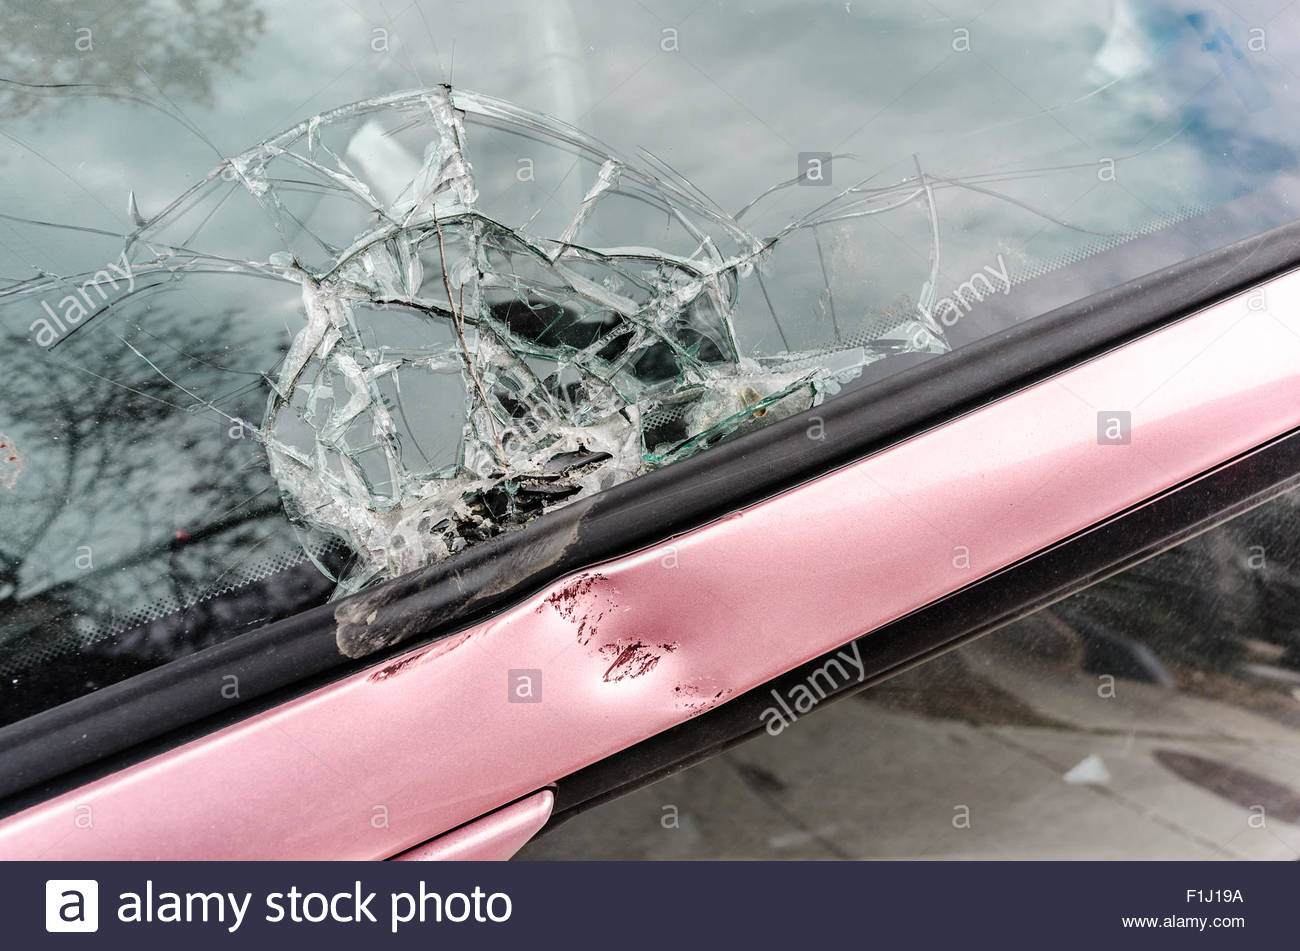 Broken car front glass from falling tree branch closeup - Stock Image